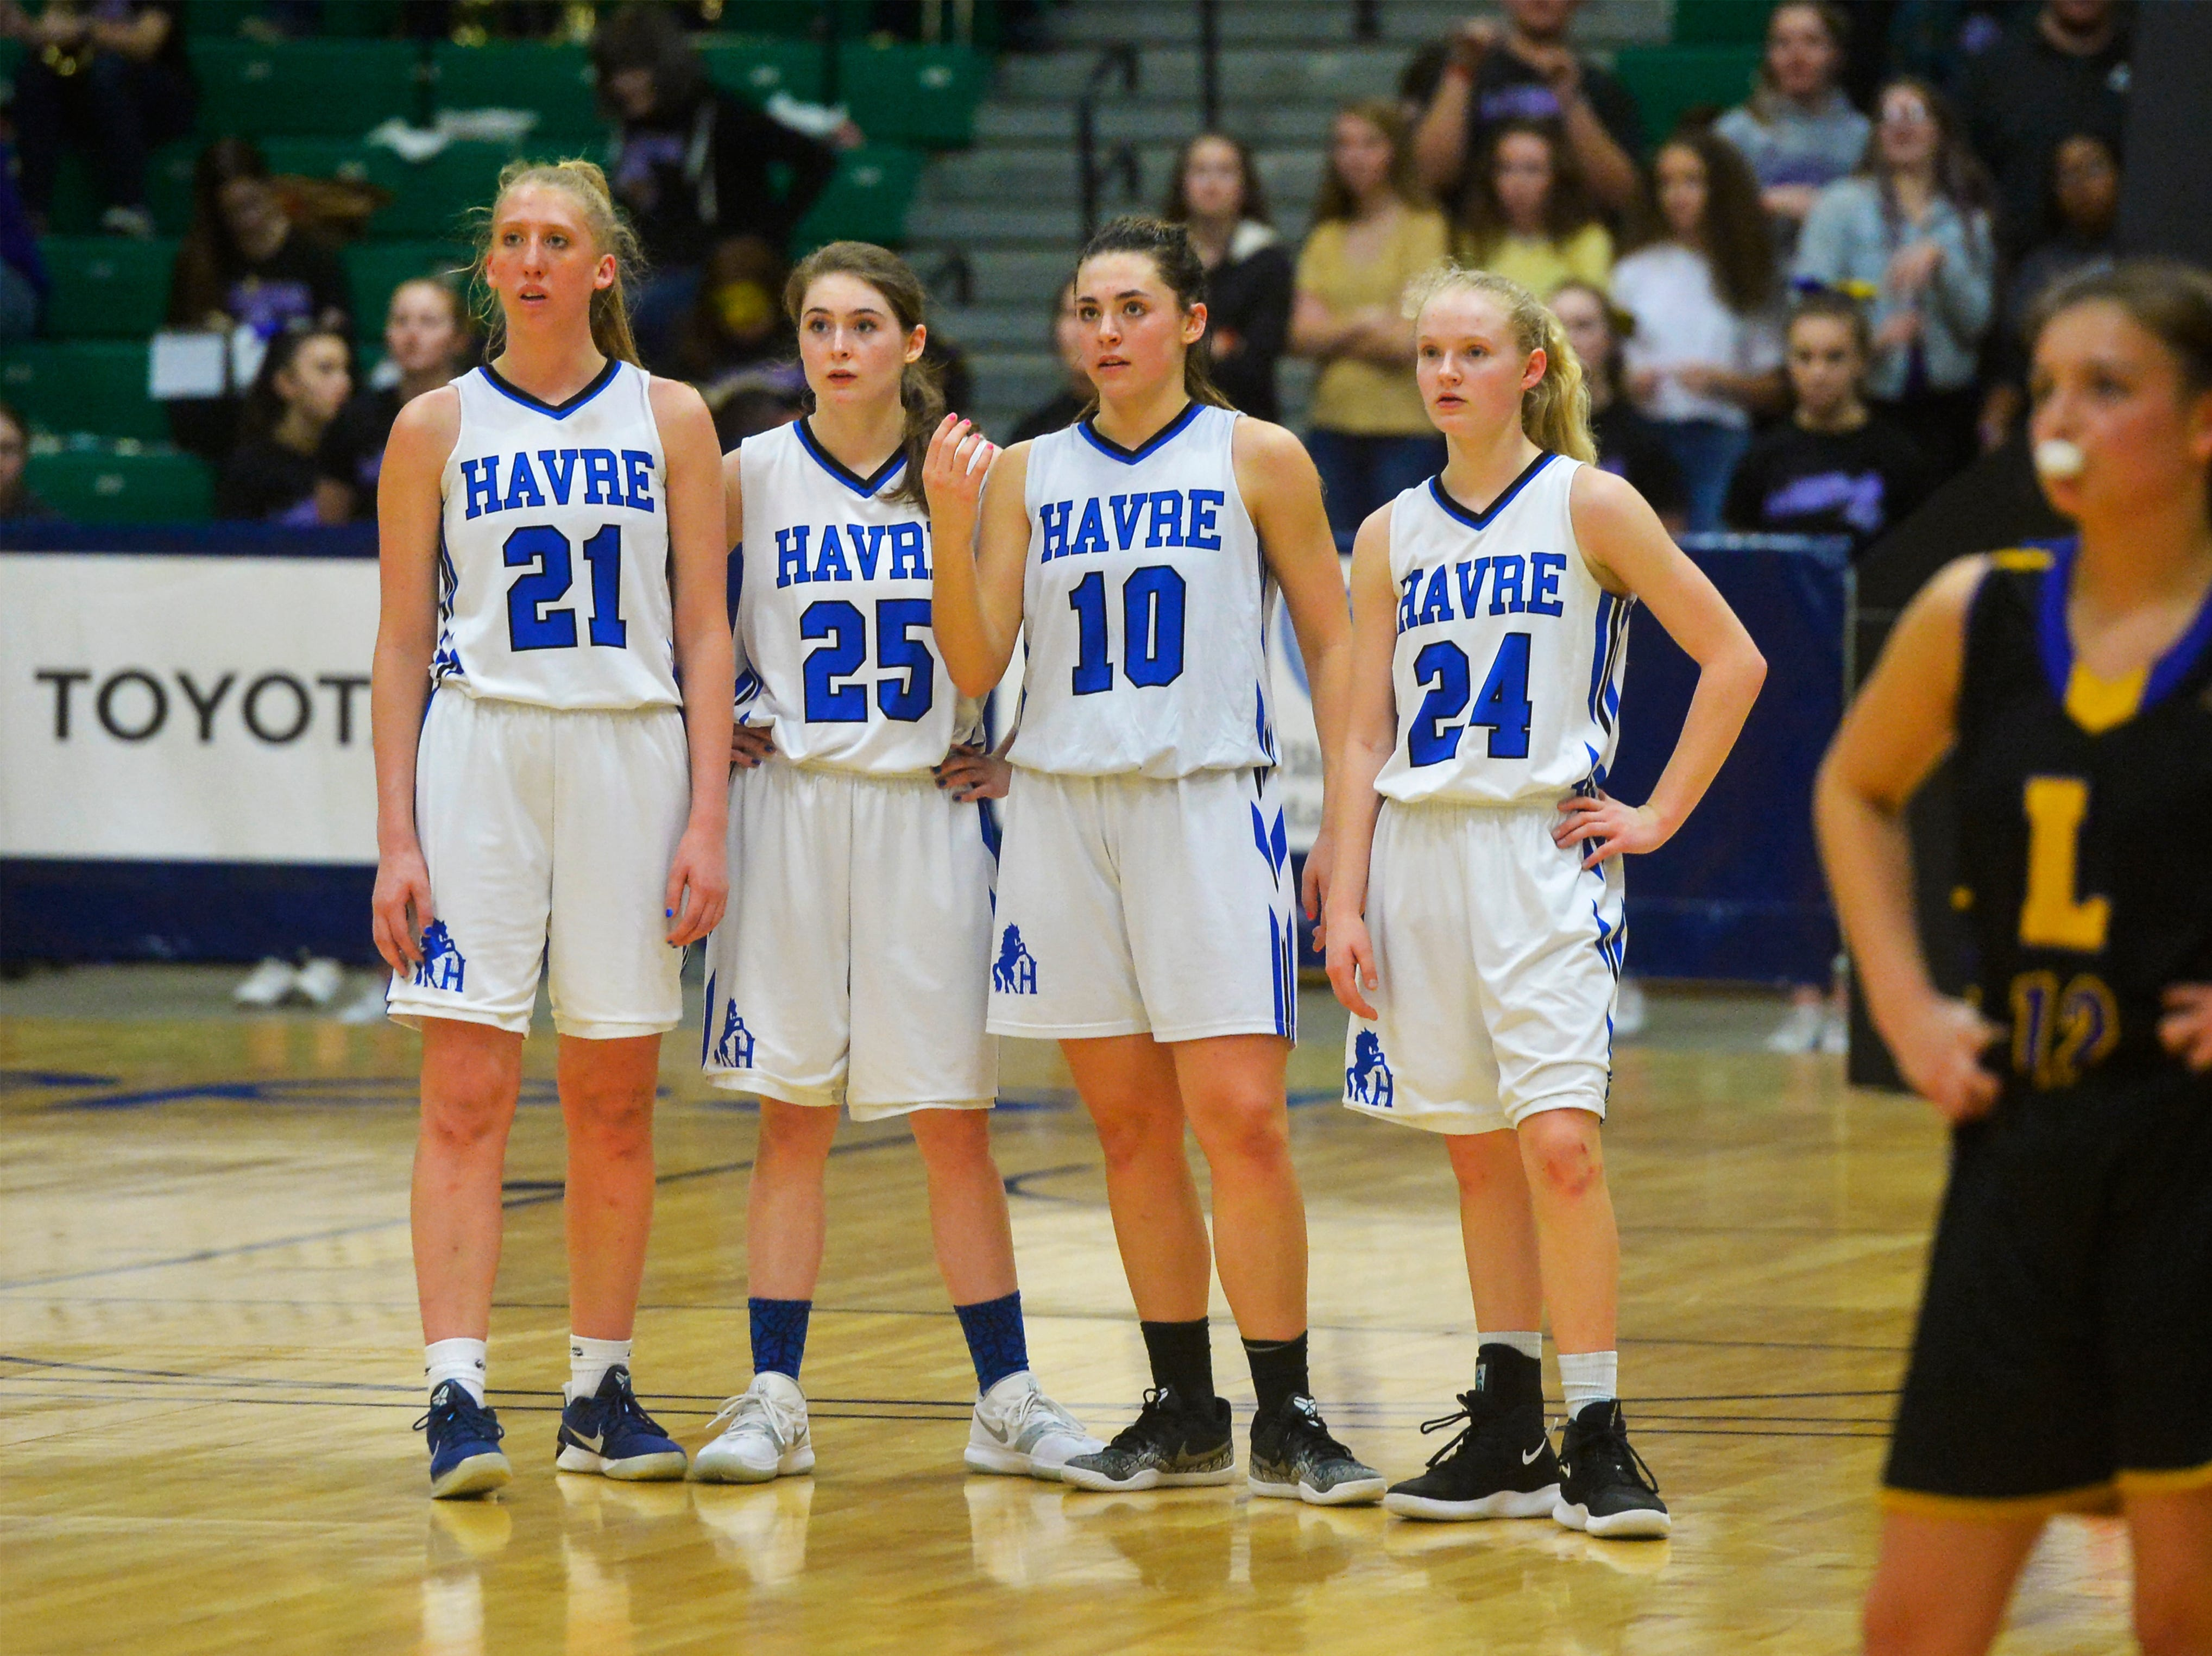 Havre players from left, Kadia Miller, Katie Wirtzberger, Kyndell Keller, and Sadie Filius look on during free throw attempts late in their semifinal game against Laurel at the State Class A Basketball Tournament in the Four Seasons Arena, Friday.